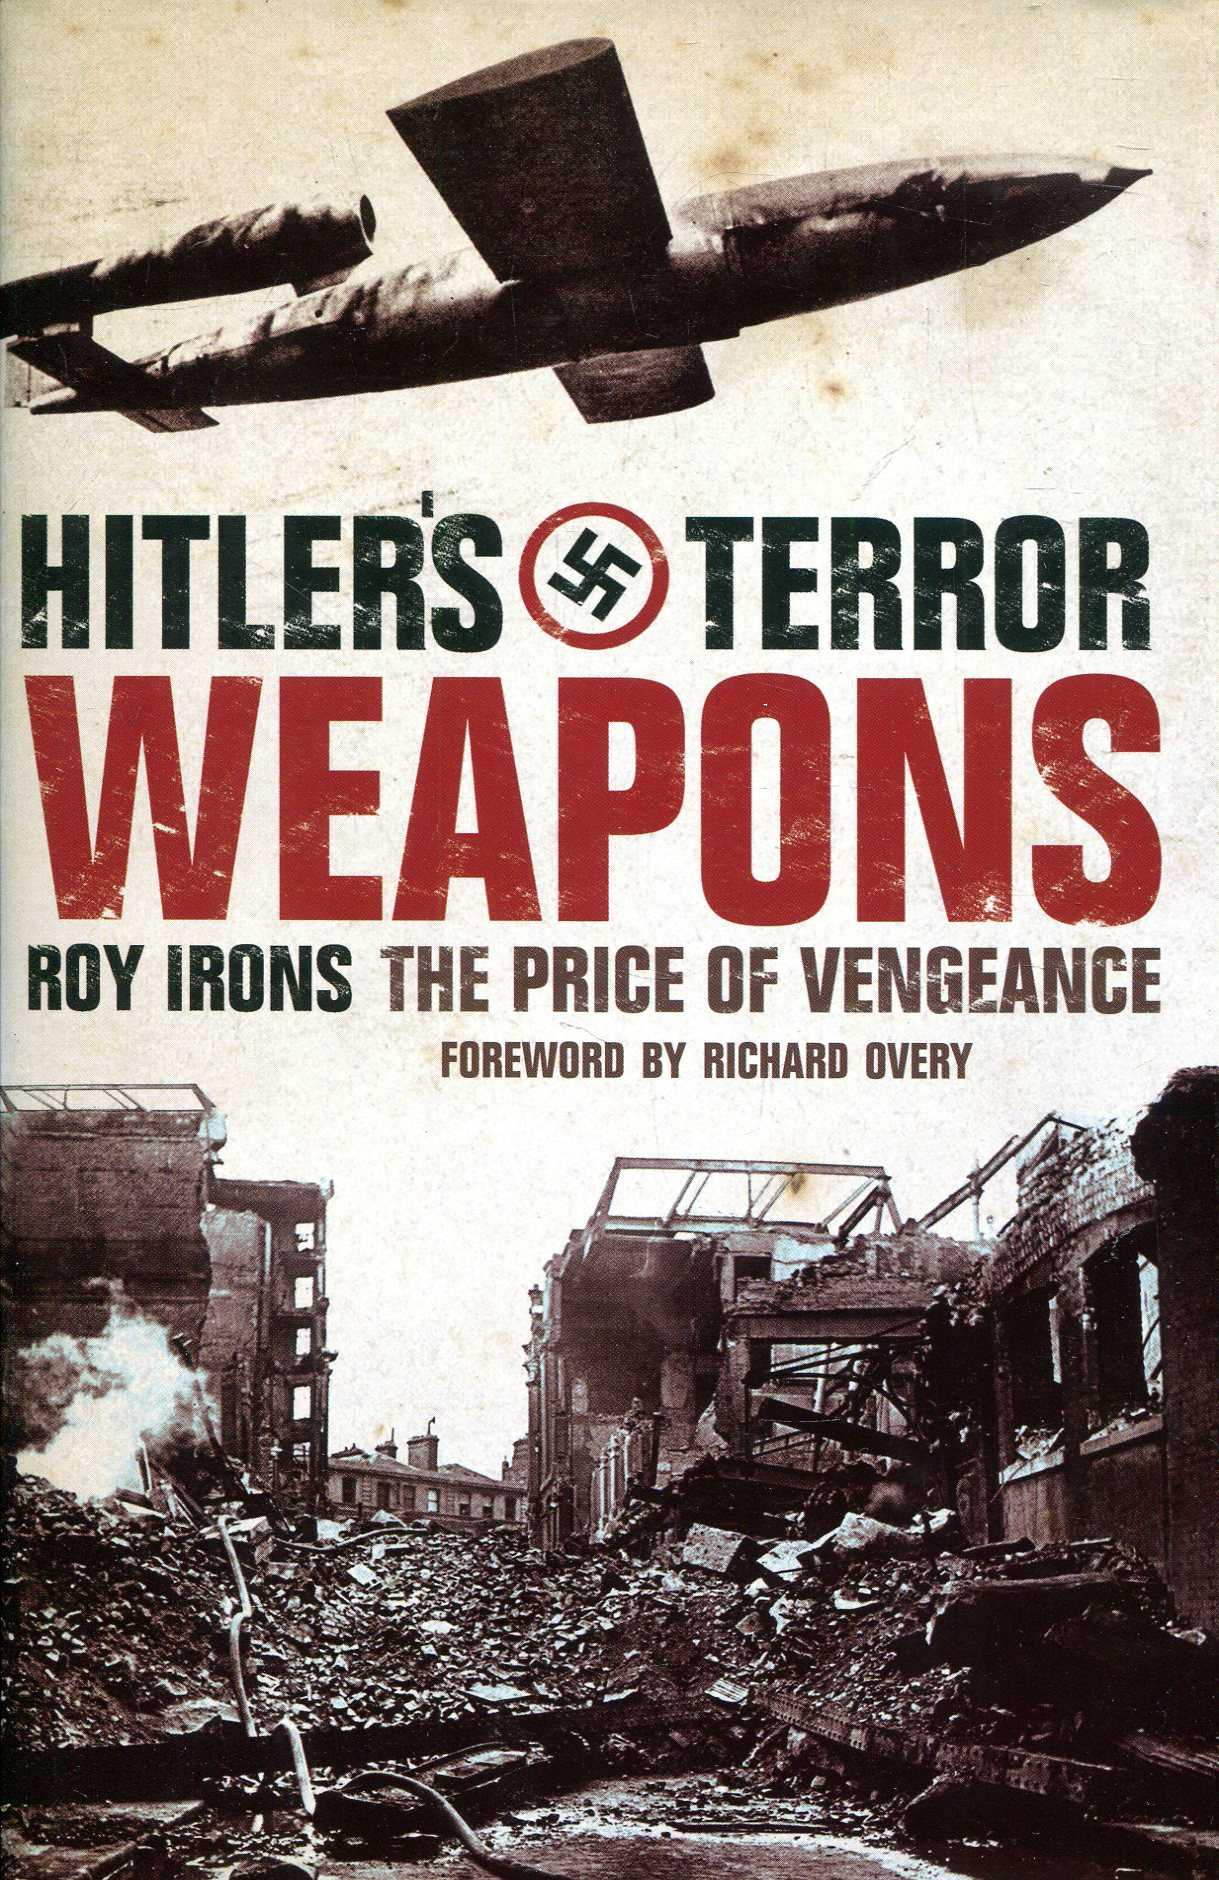 Image for Hitler's Terror Weapons: The Price of Vengeance